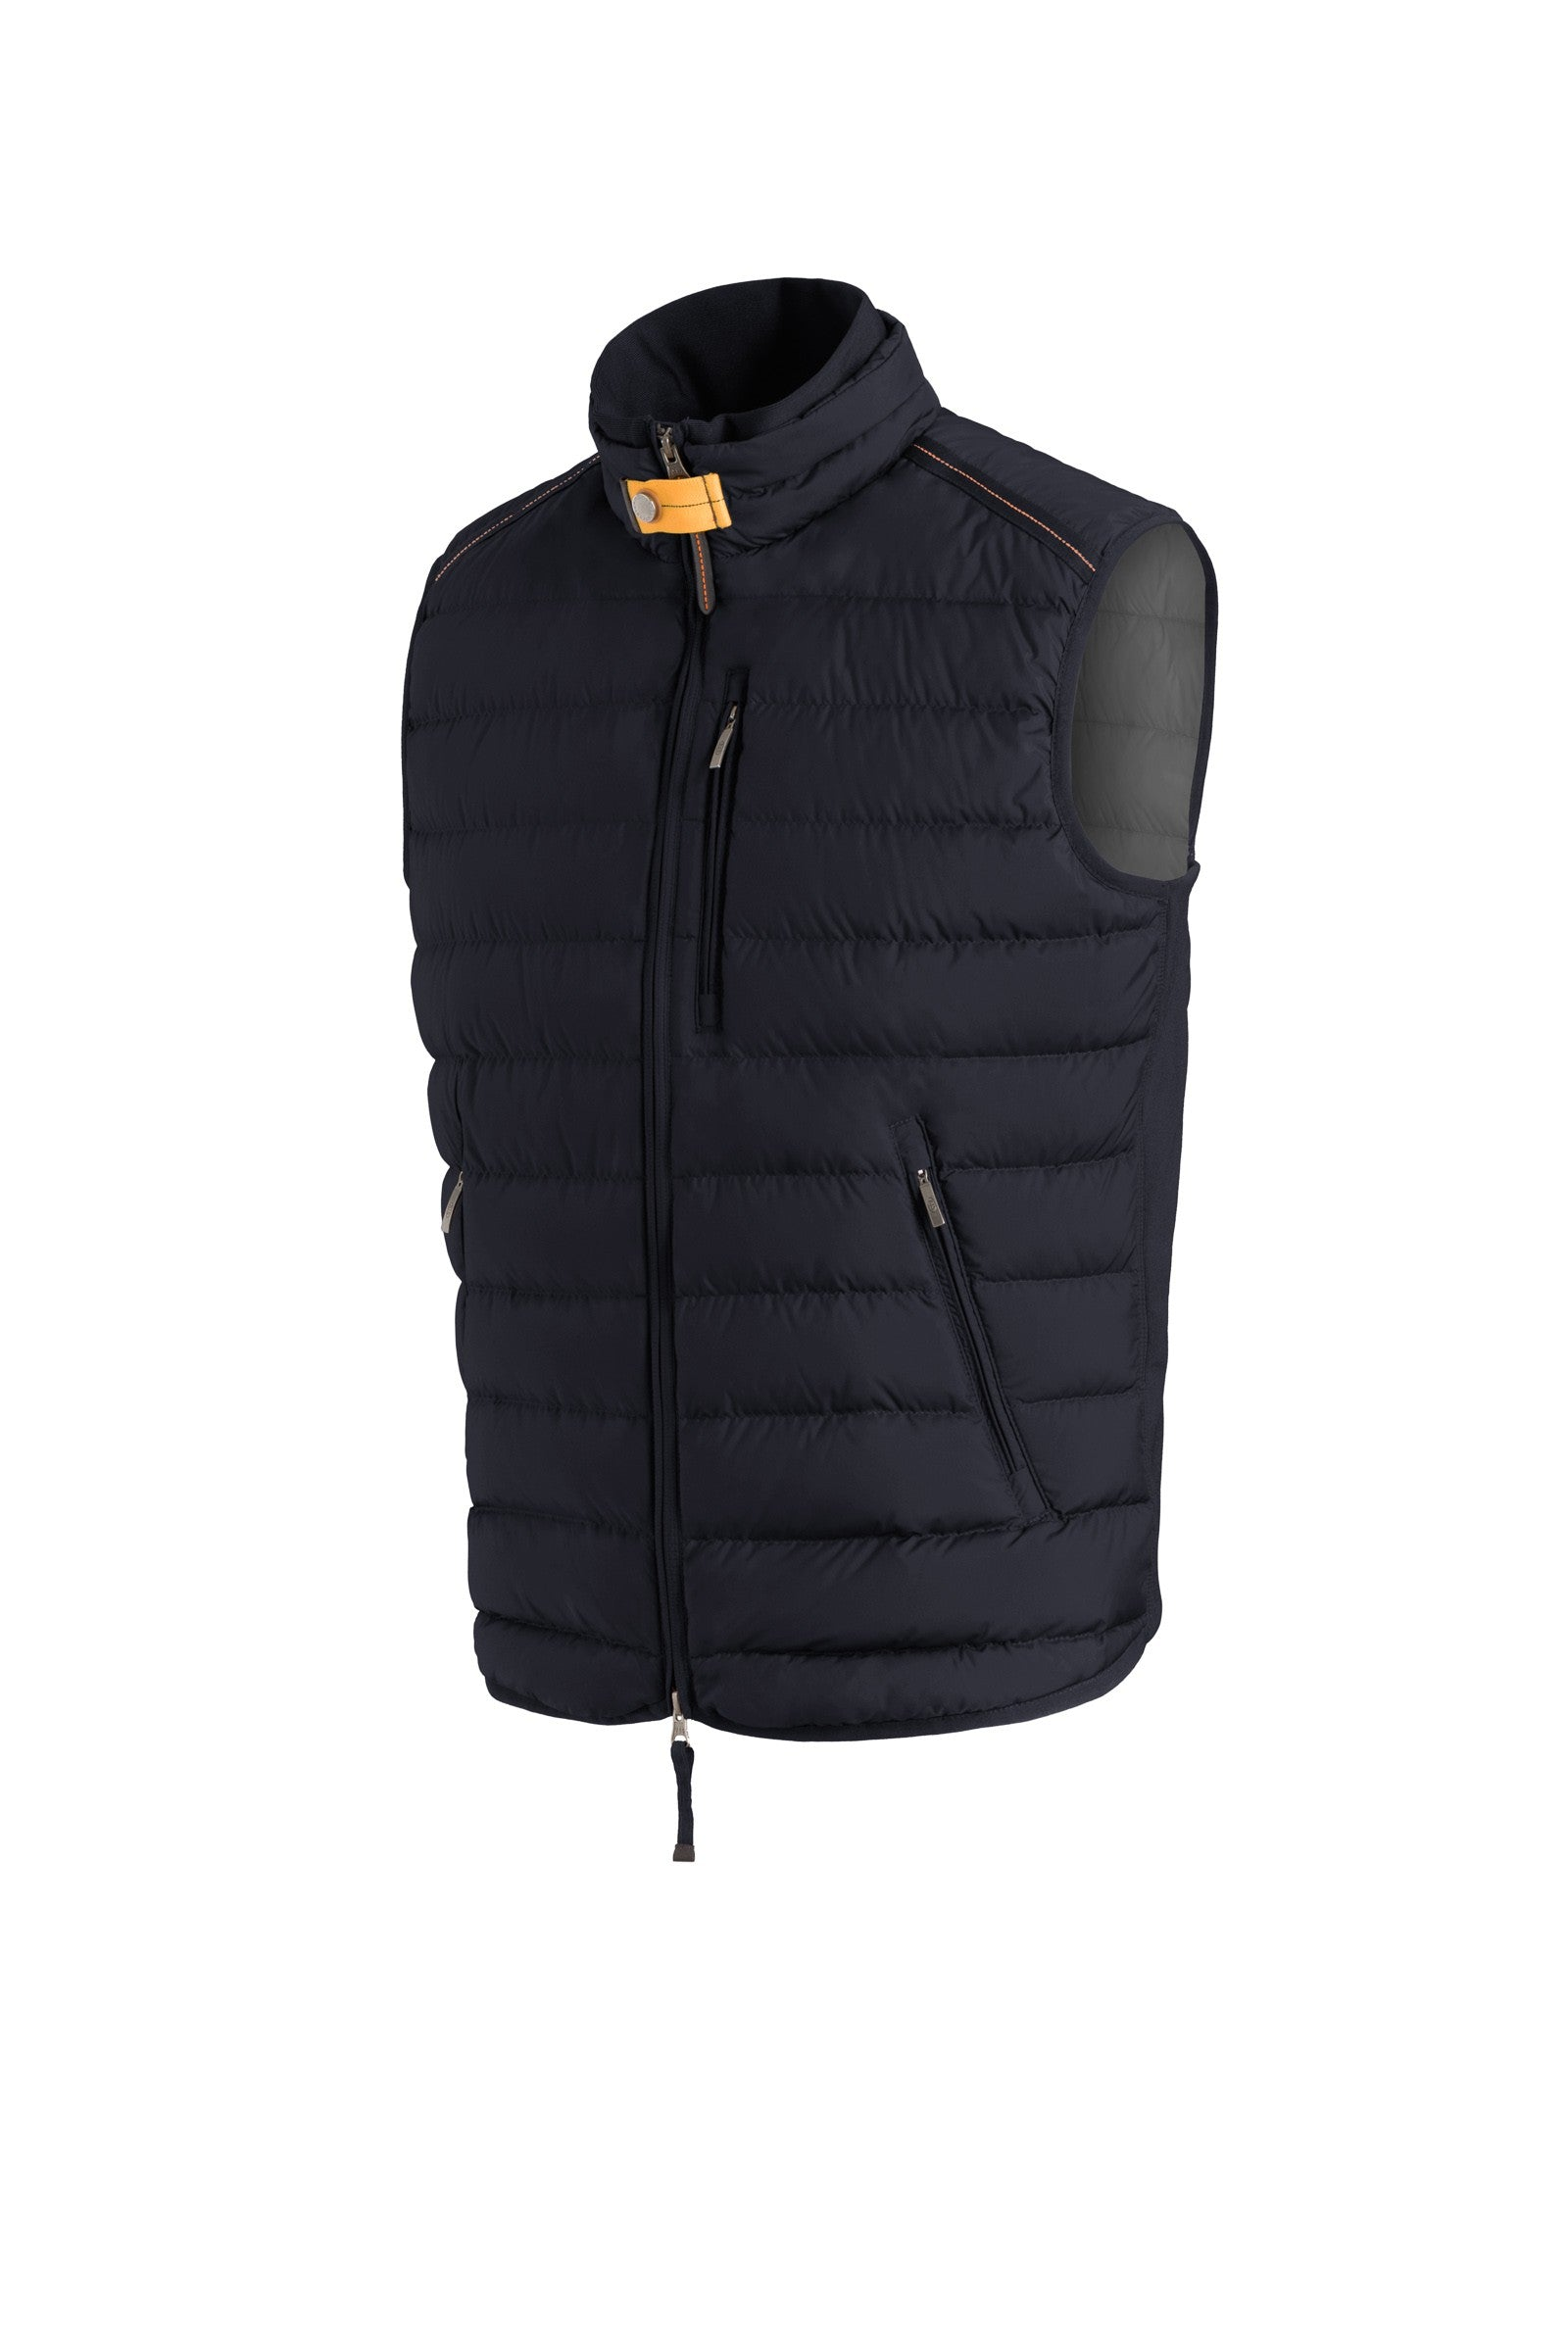 Parajumpers M-Perfect Men's Vest